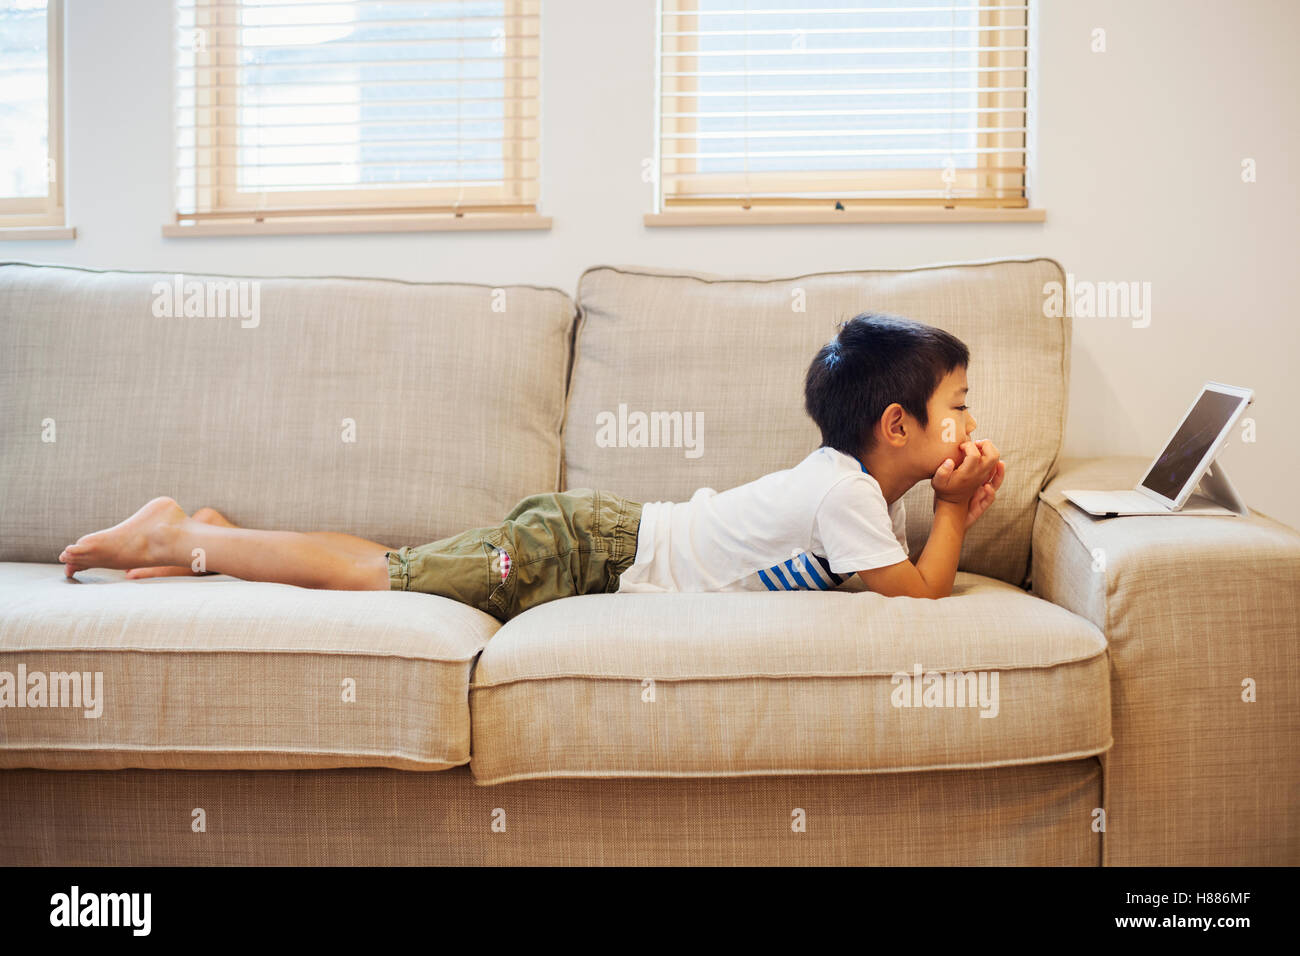 Family home. A boy lying on a sofa watching a digital tablet. - Stock Image